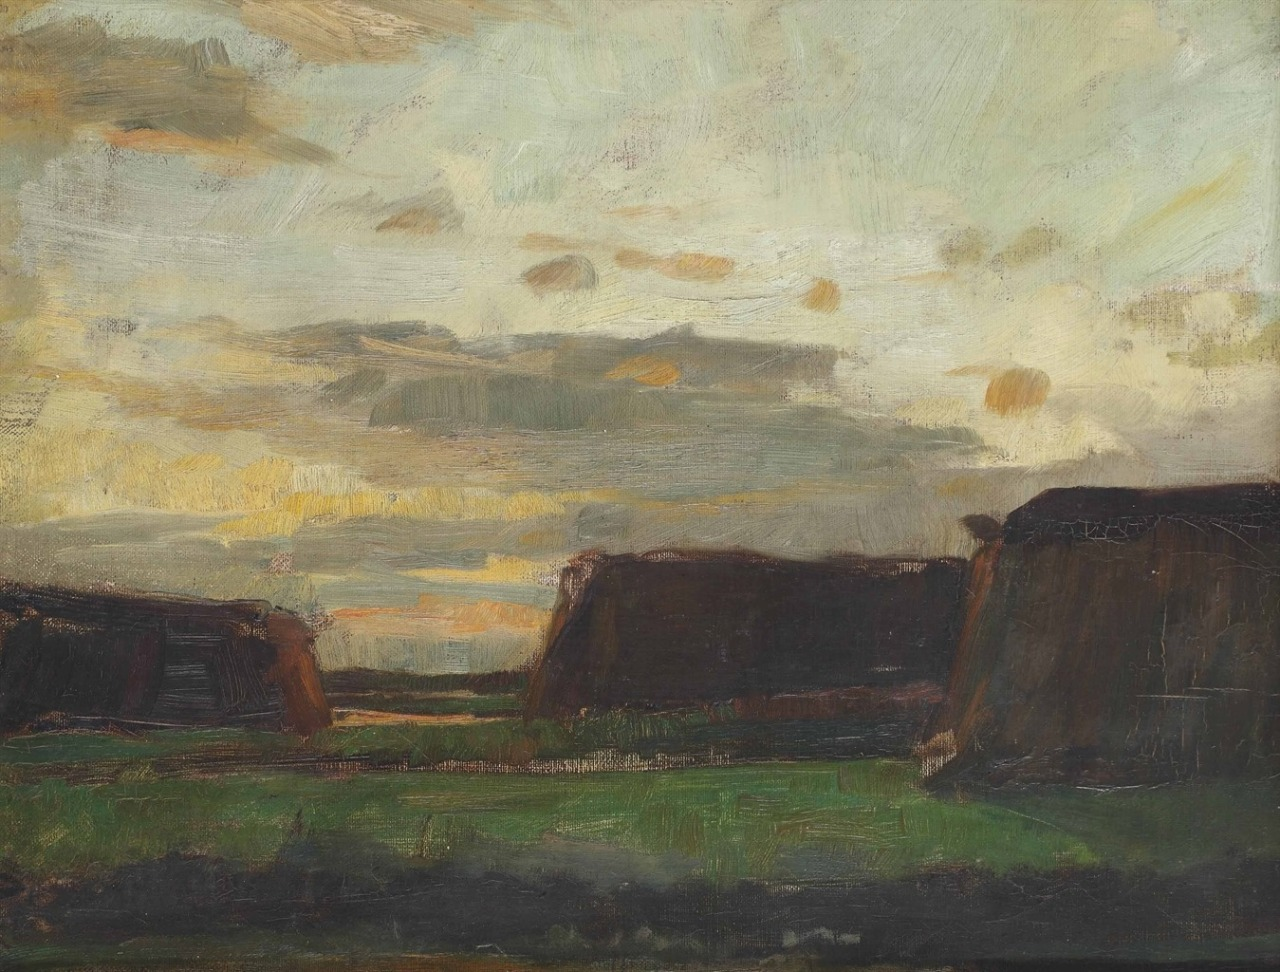 Piet Mondrian (1872-1944) Three haystacks in a field, circa 1907